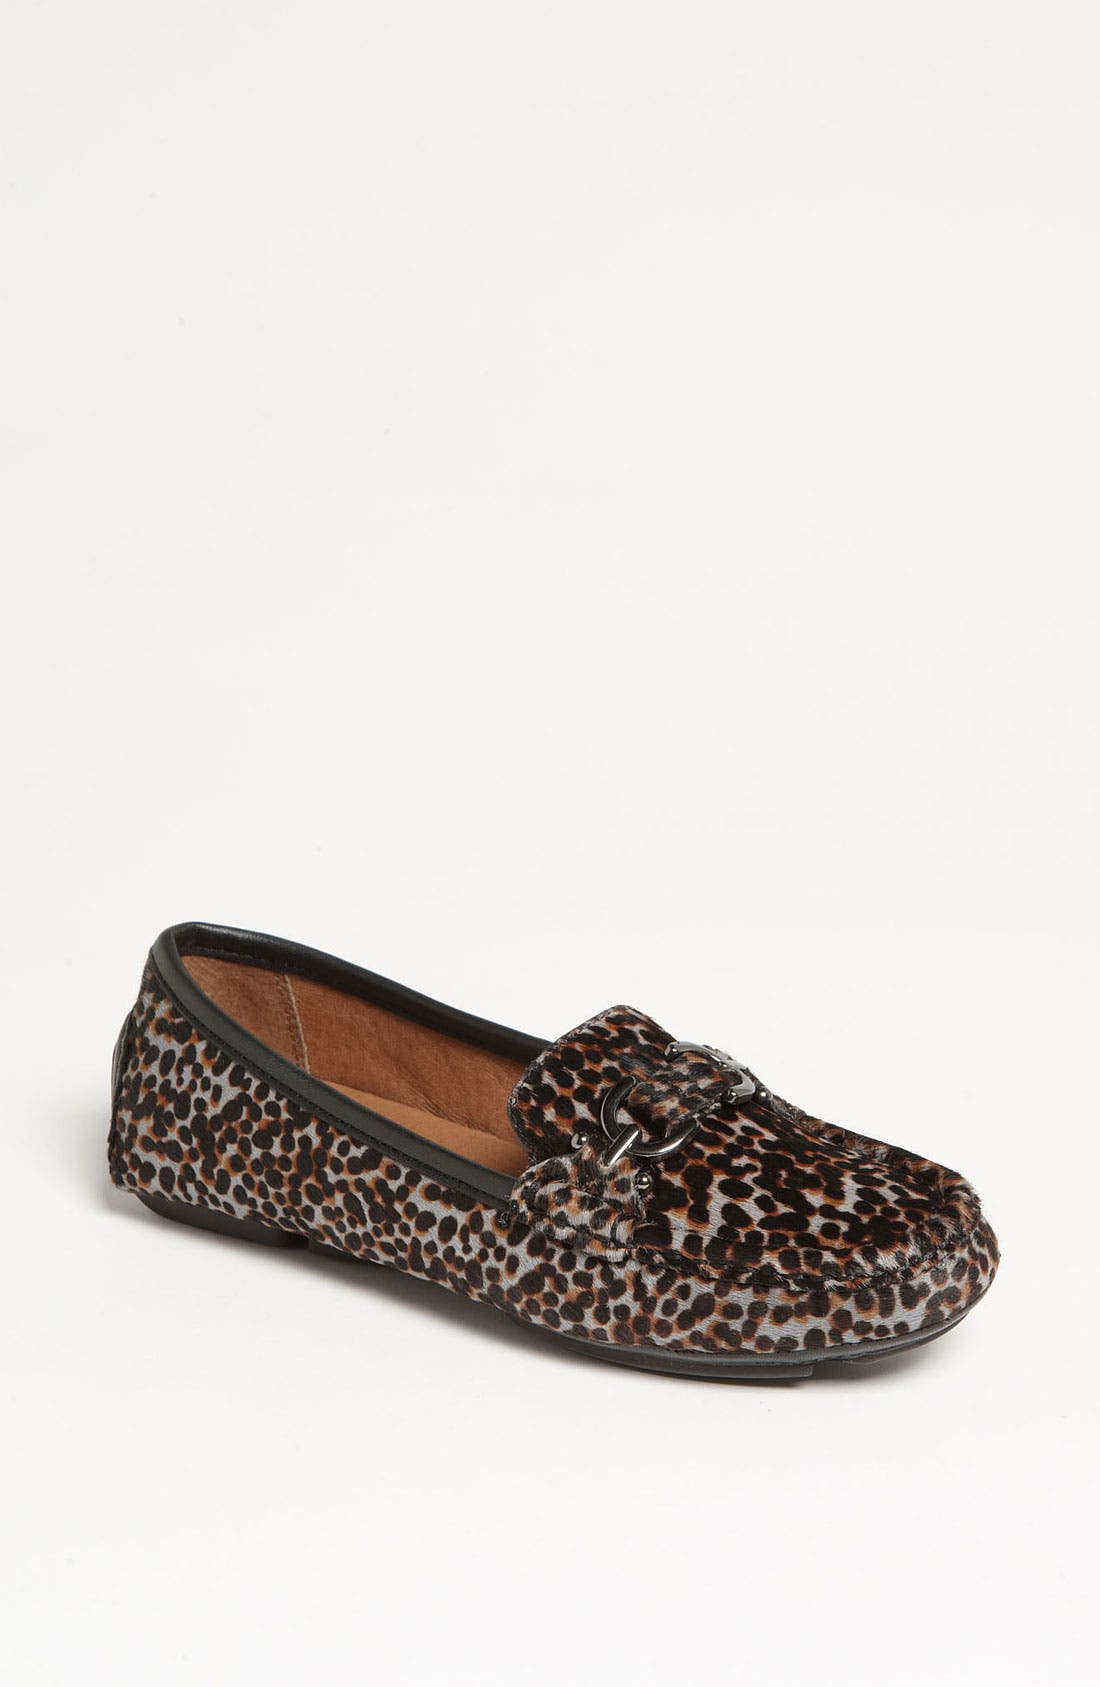 Alternate Image 1 Selected - Donald J Pliner 'Viky' Loafer